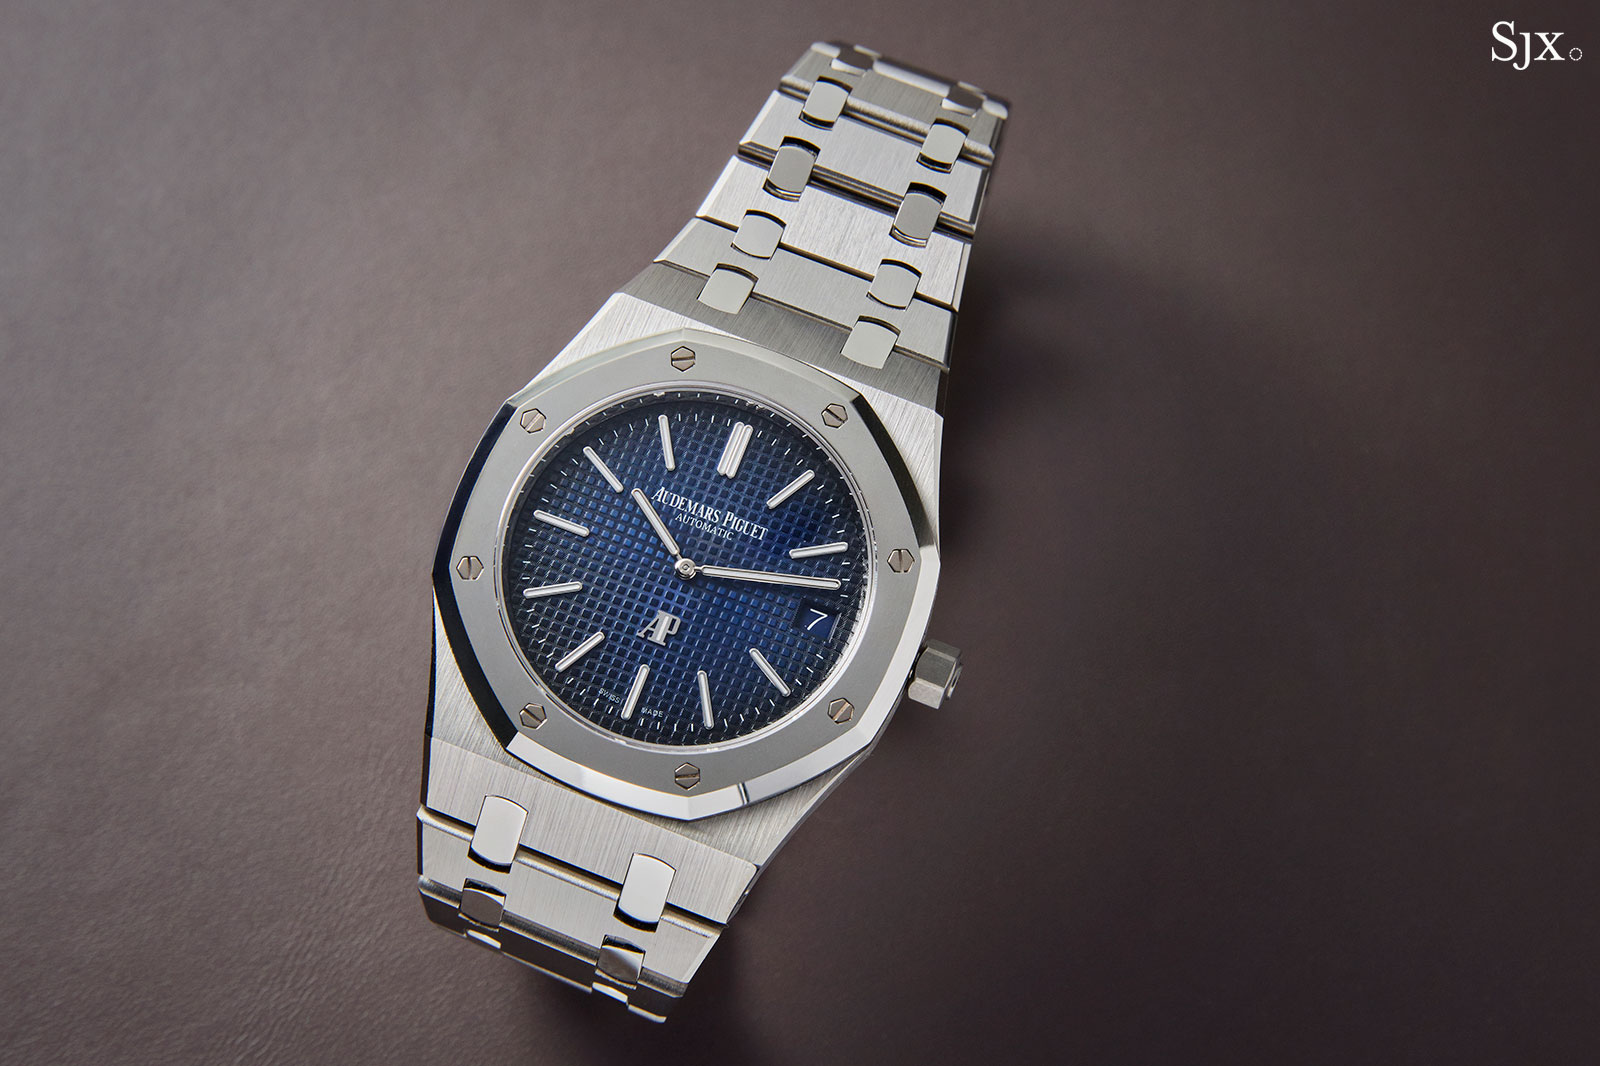 Audemars Piguet Royal Oak Ti platinum 15202IP 3